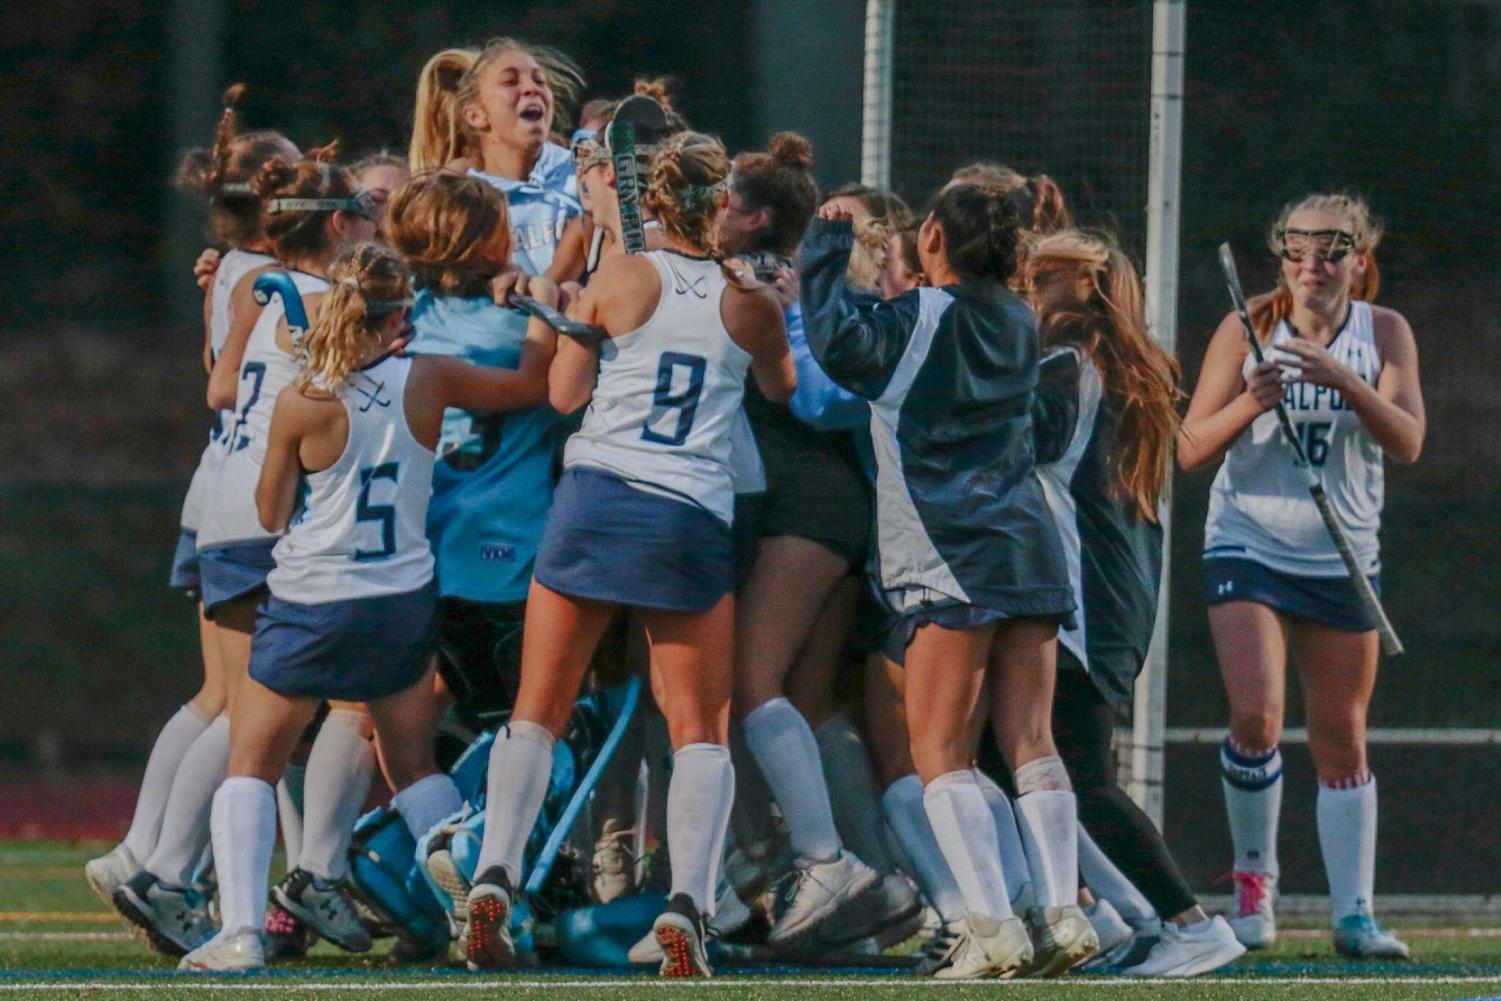 The Porkers erupt in cheers and share a group hug after beating Plymouth North 3-1.